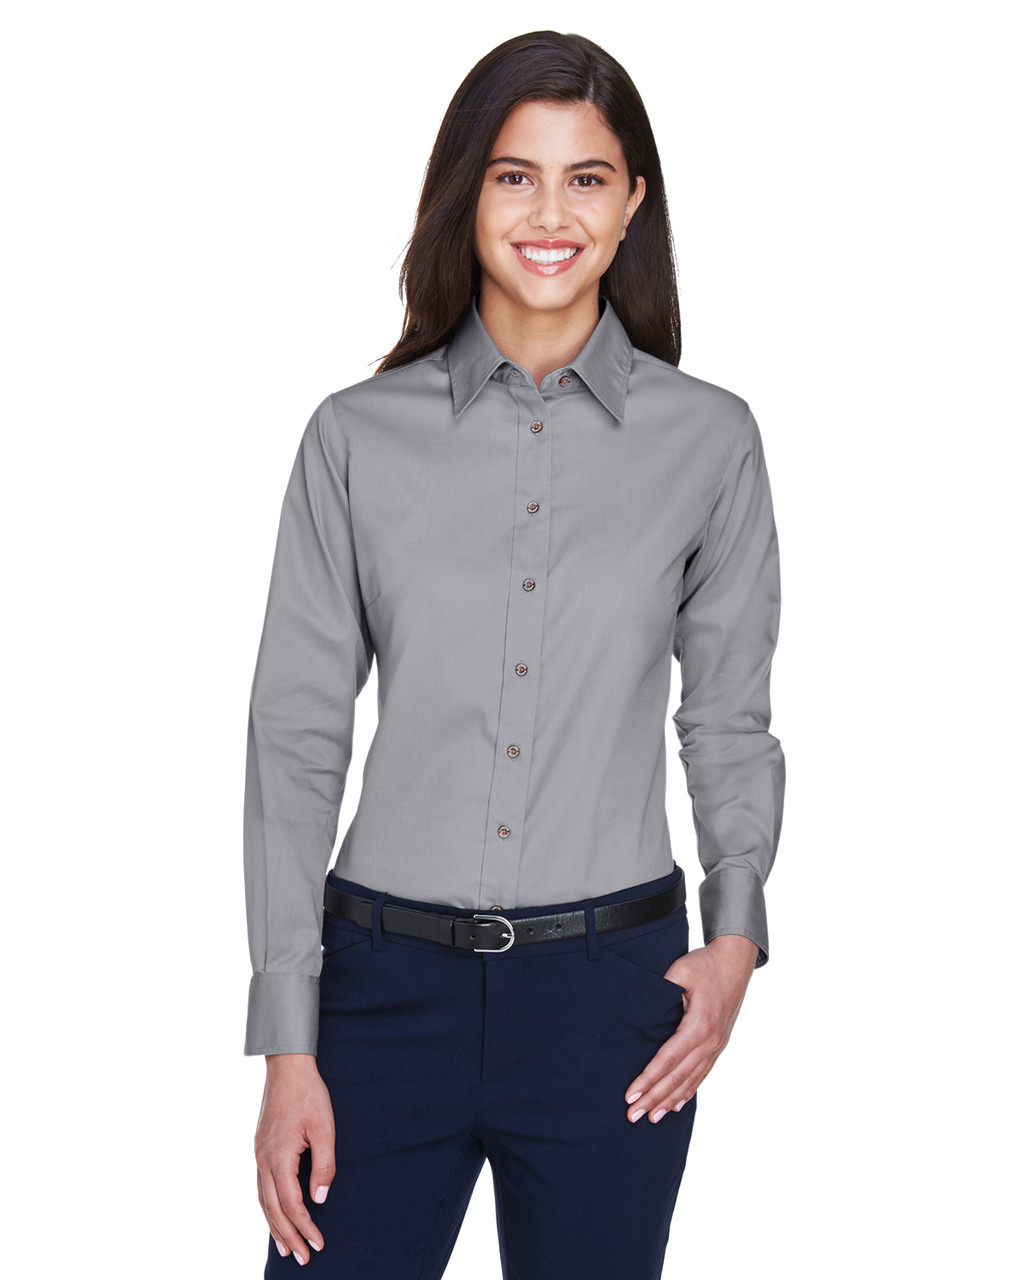 Dark Grey - M500W Harriton Easy Blend Long-Sleeve Twill Shirt with Stain-Release | BlankClothing.ca